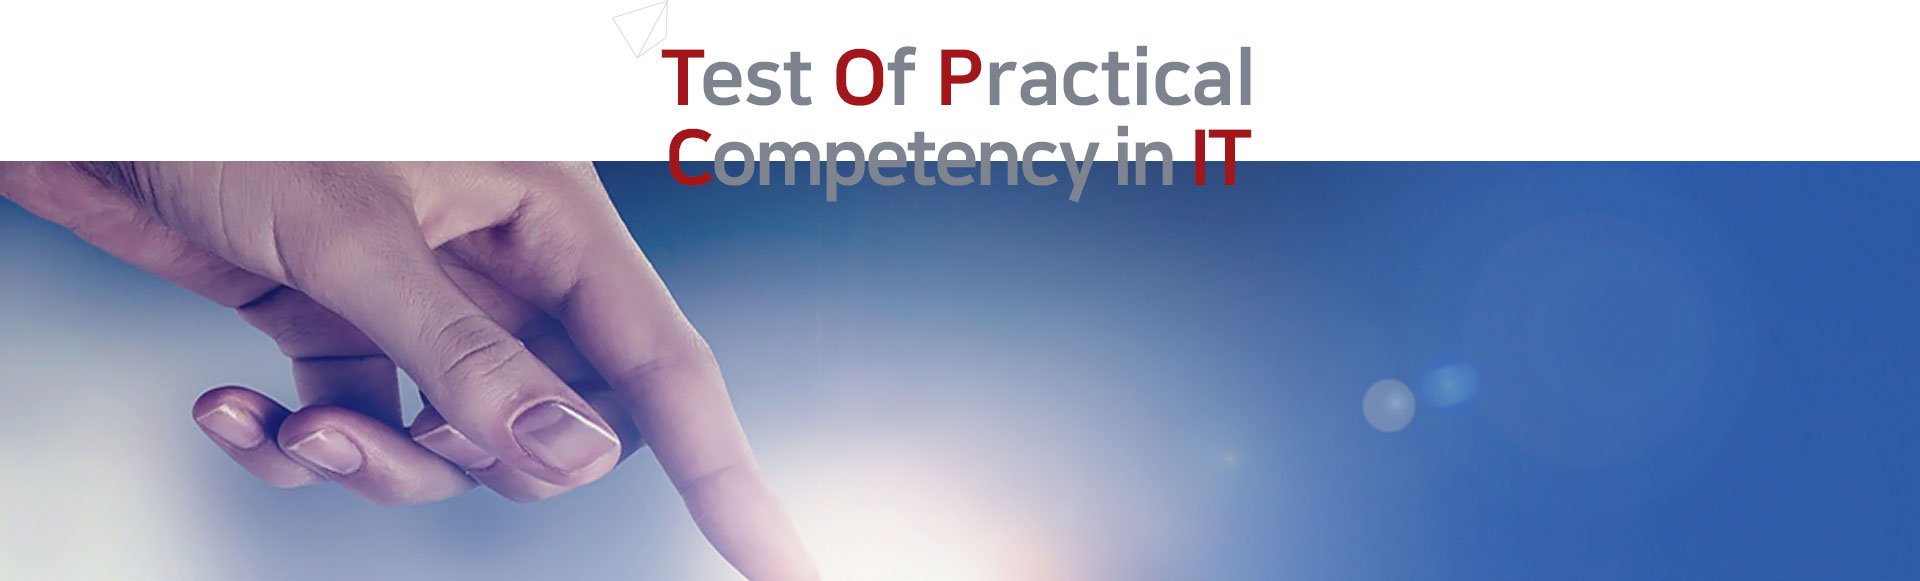 Test Of Practical Competency in IT